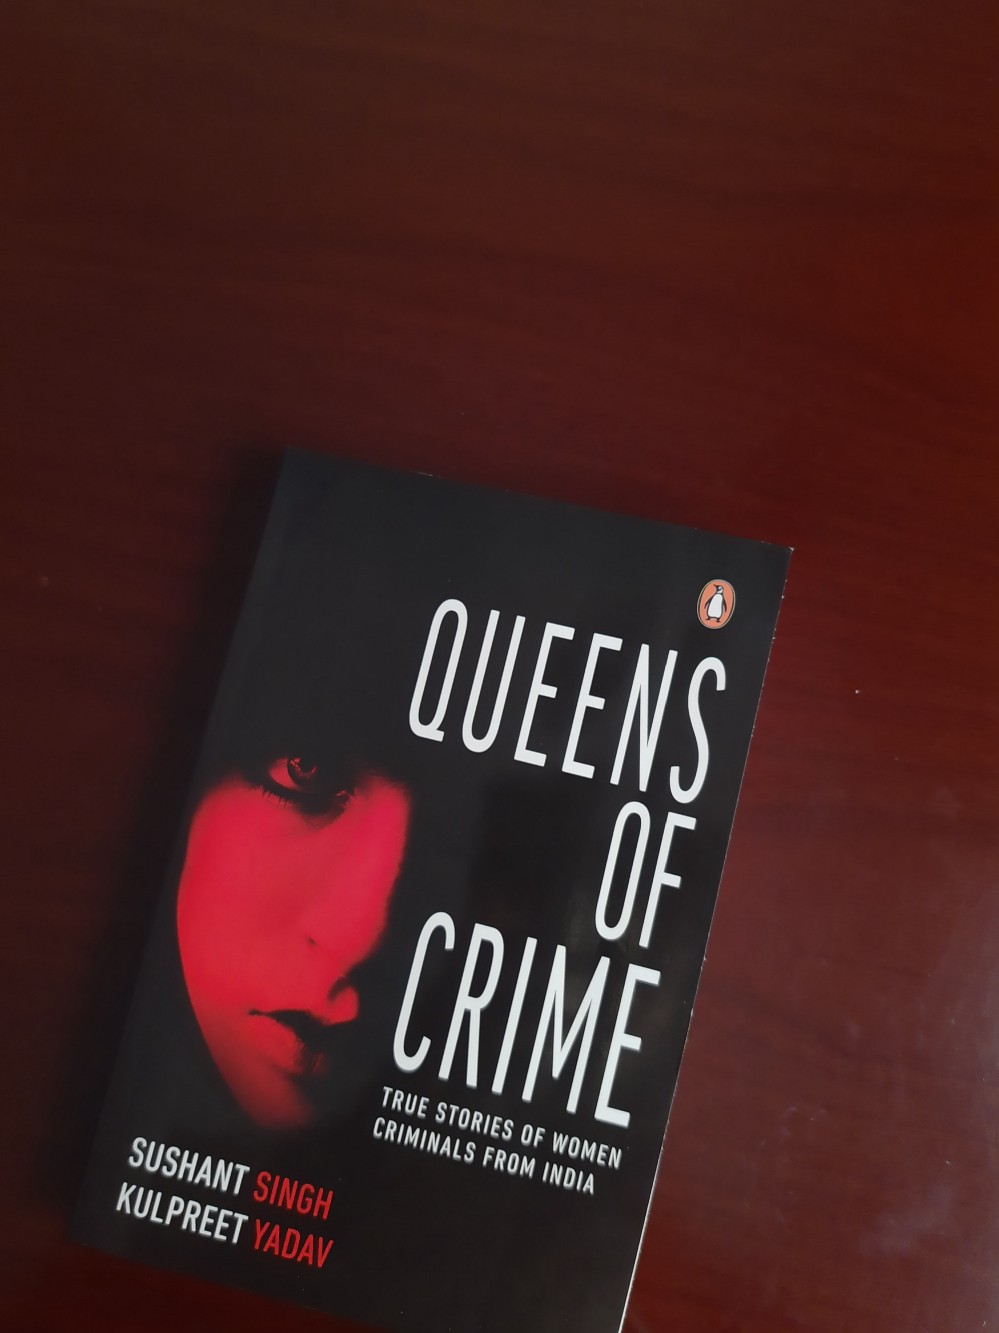 Book Review-Queens of Crime: True Stories of Women Criminals from Indiaby Sushant Singh and KulpreetYadav